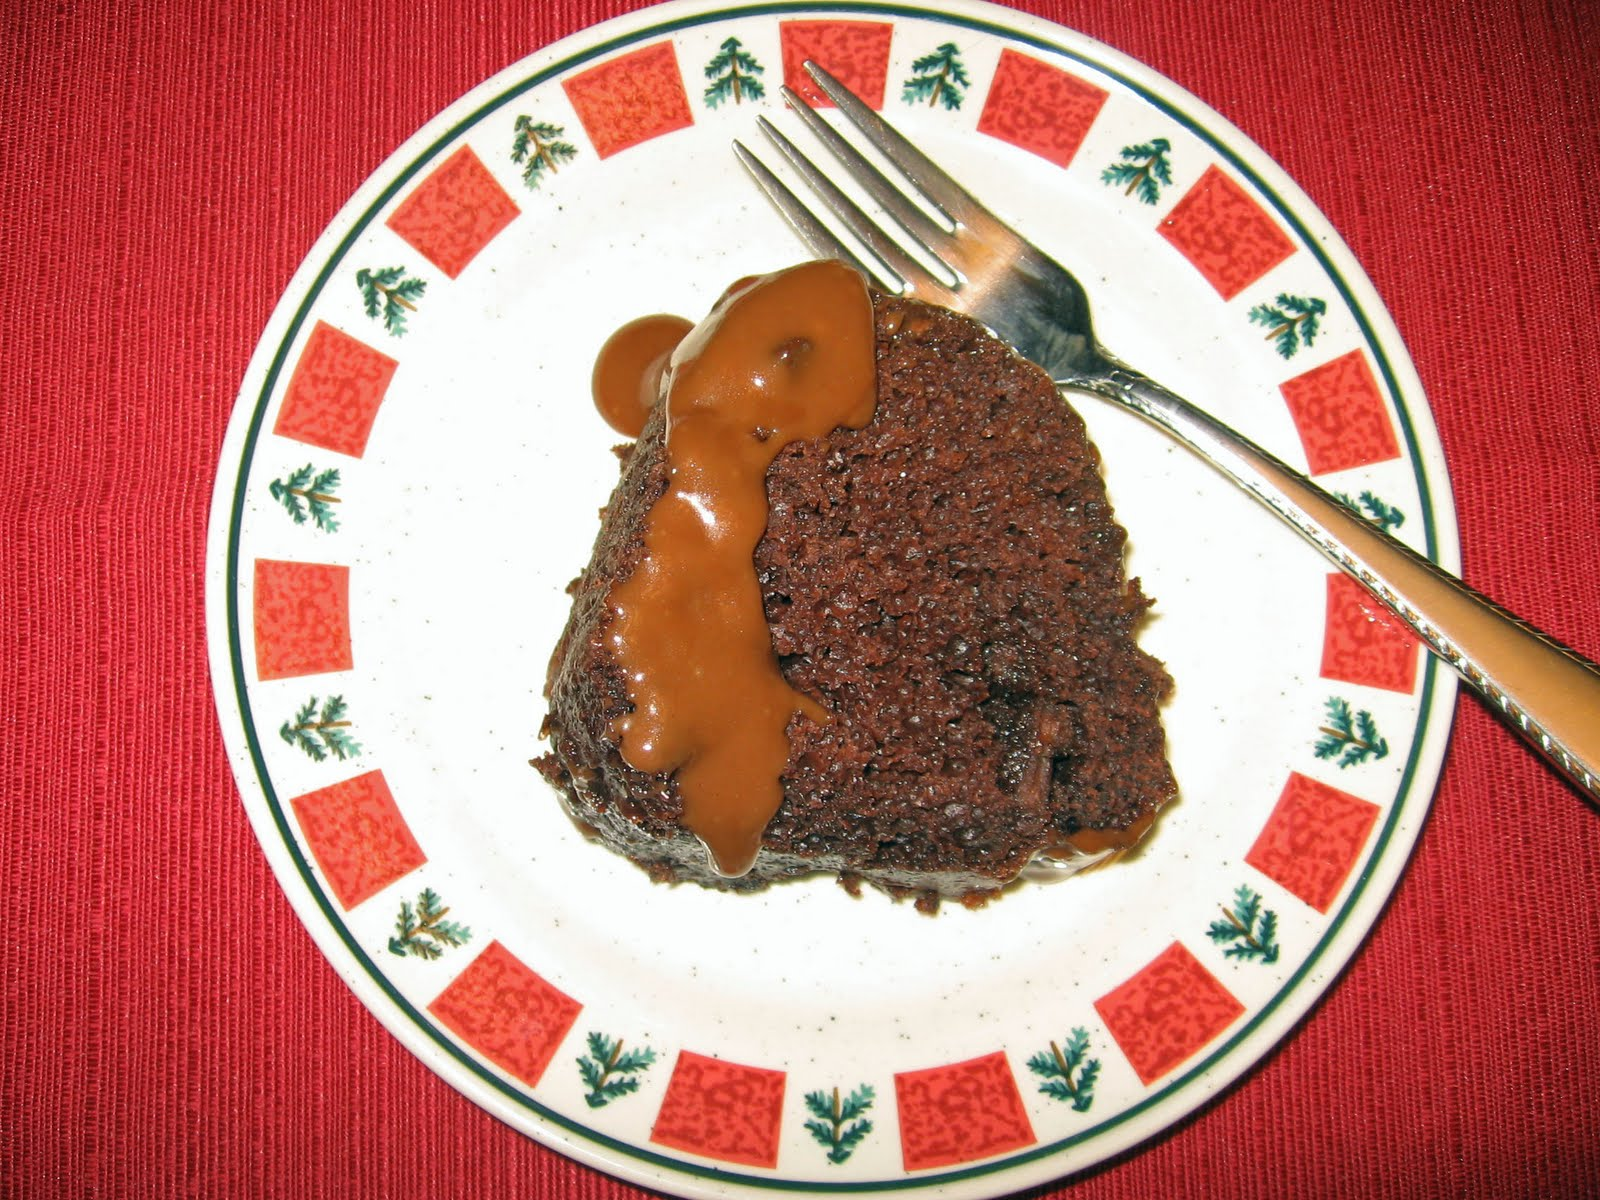 Salad Dressing Sheet Cake With Chocolate Fudge Icing